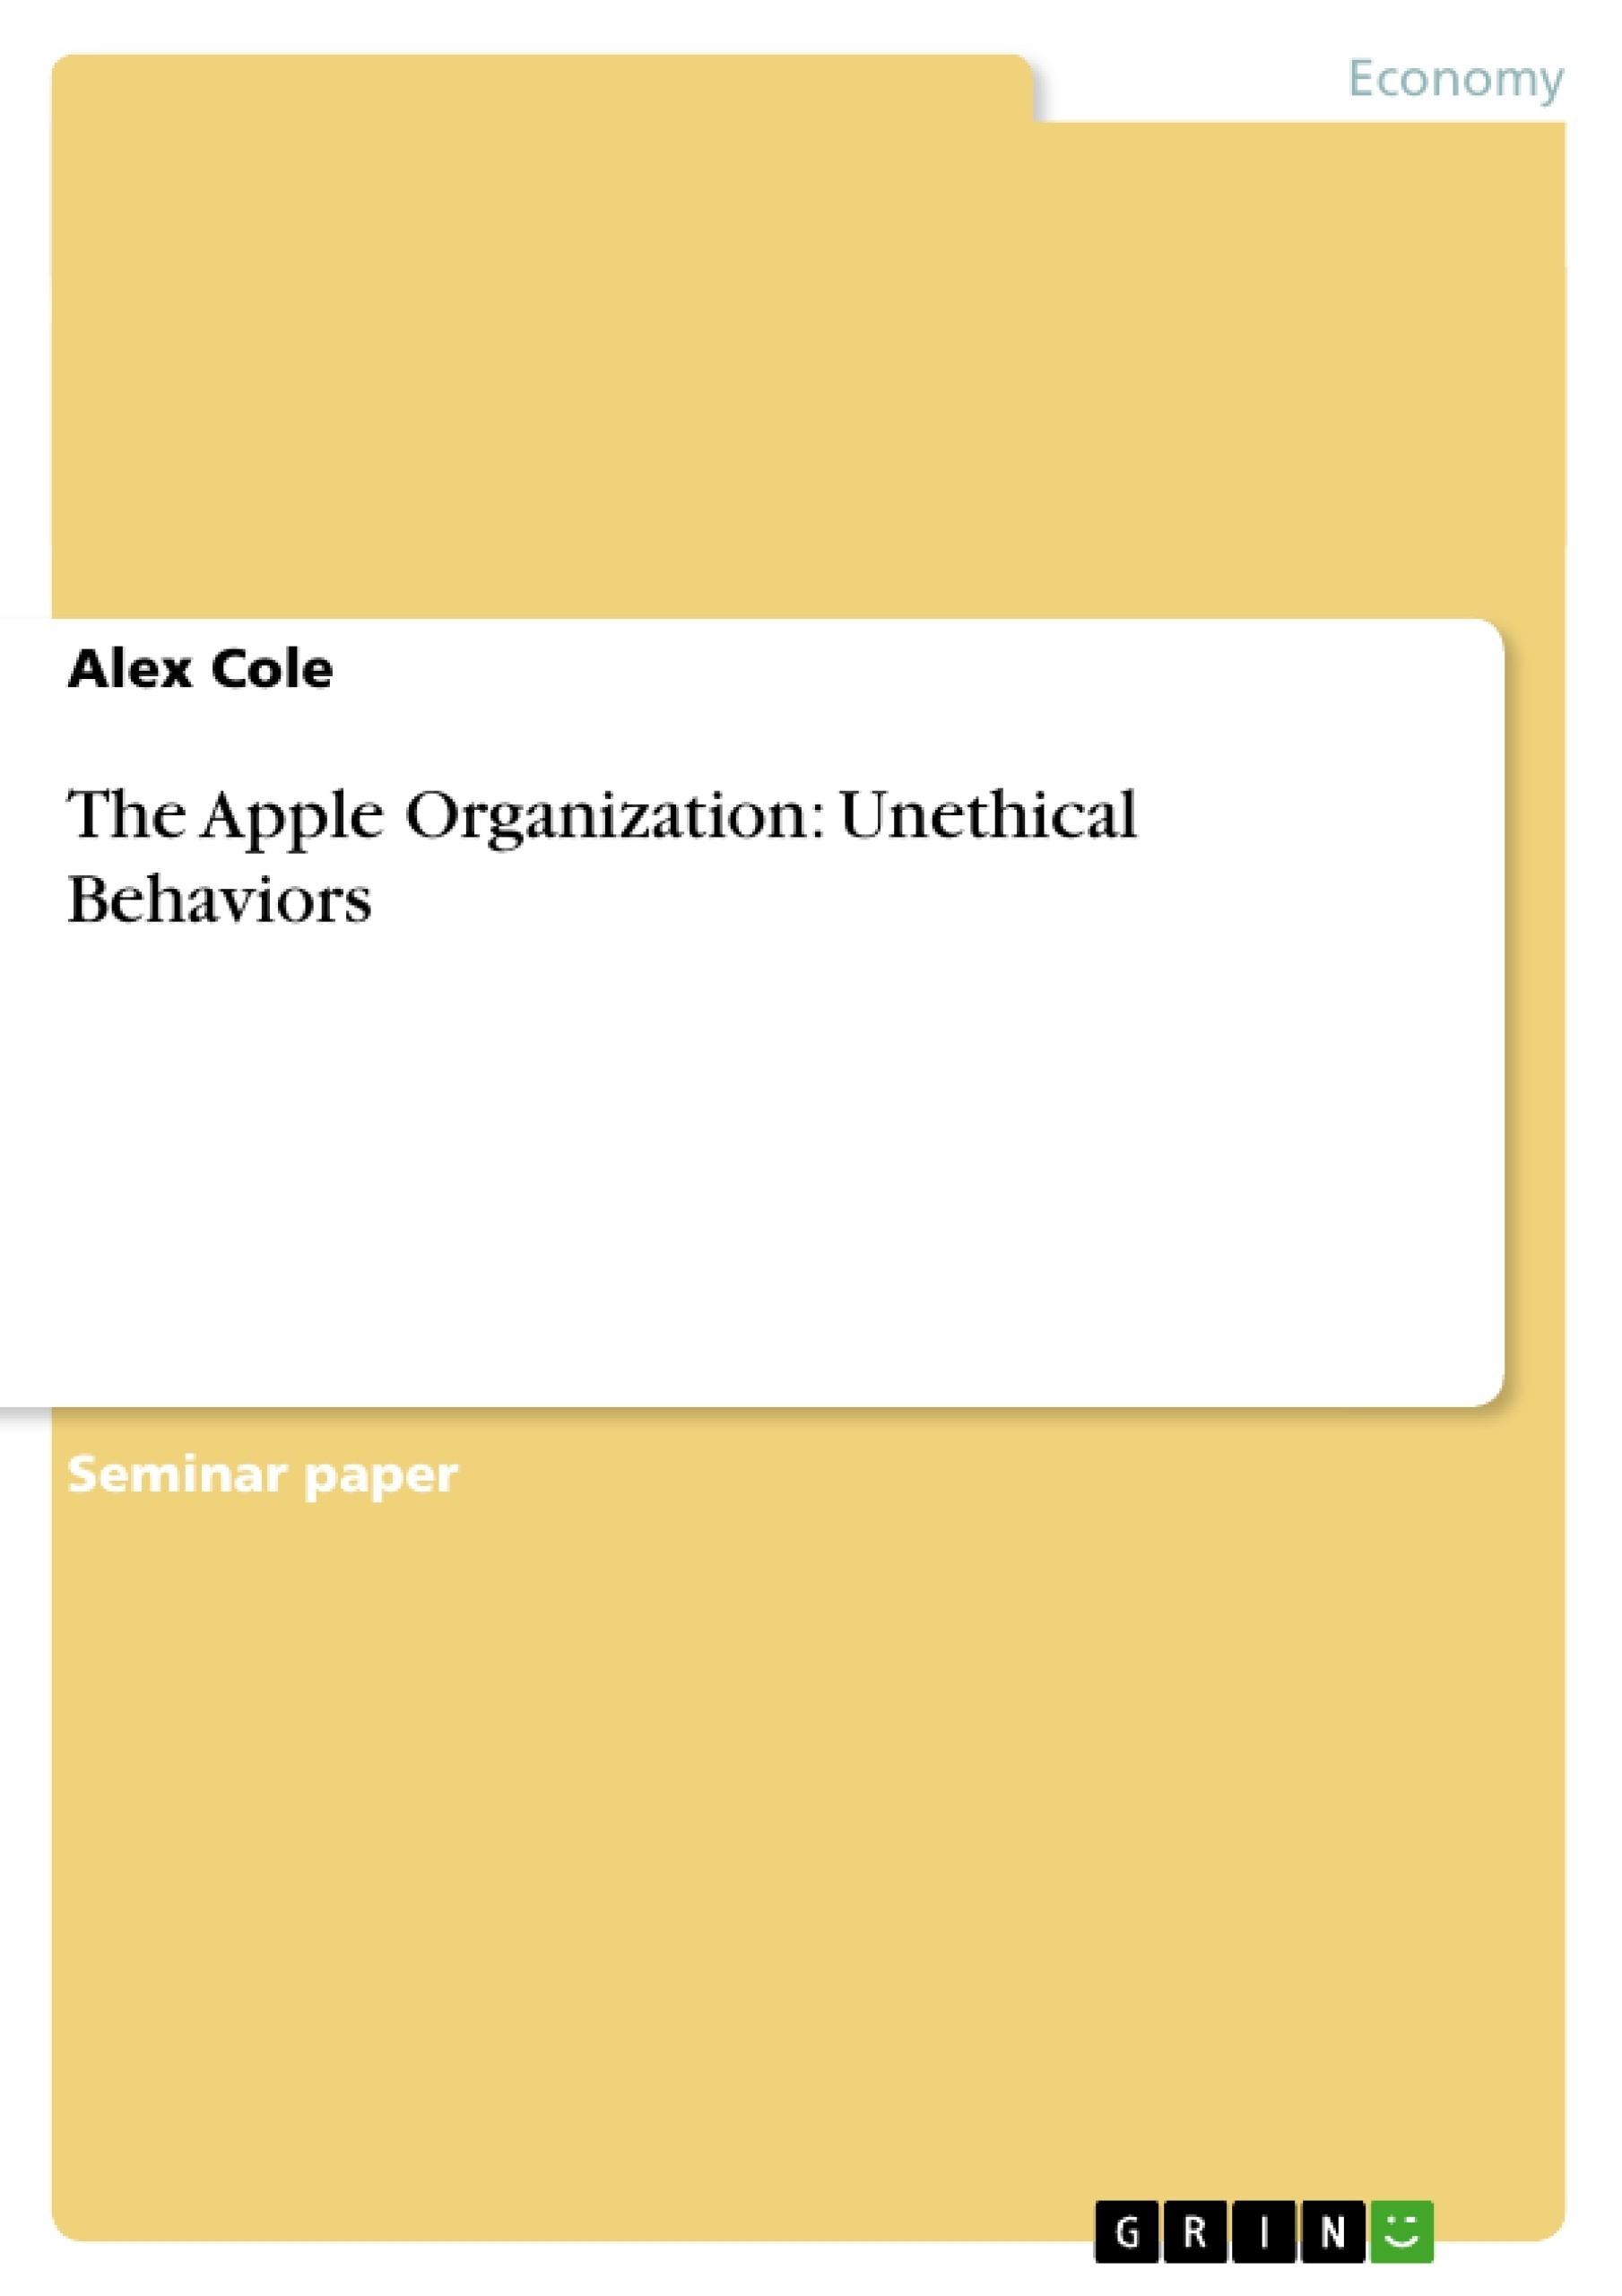 Title: The Apple Organization: Unethical Behaviors